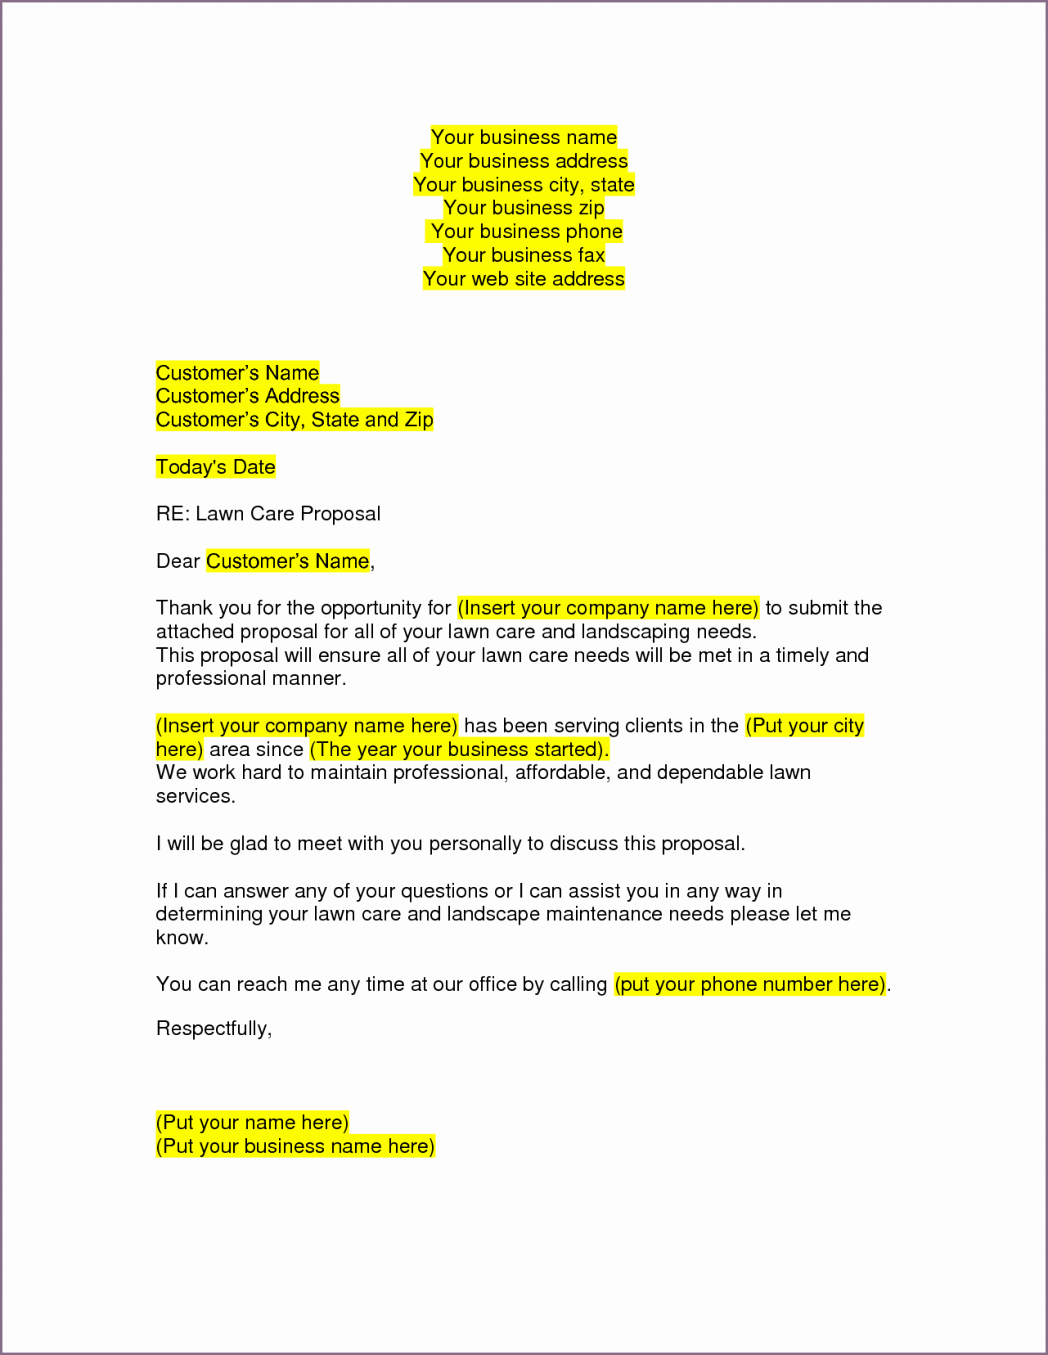 Commercial Lawn Care Bid Template Inspirational Lawn Care Proposal